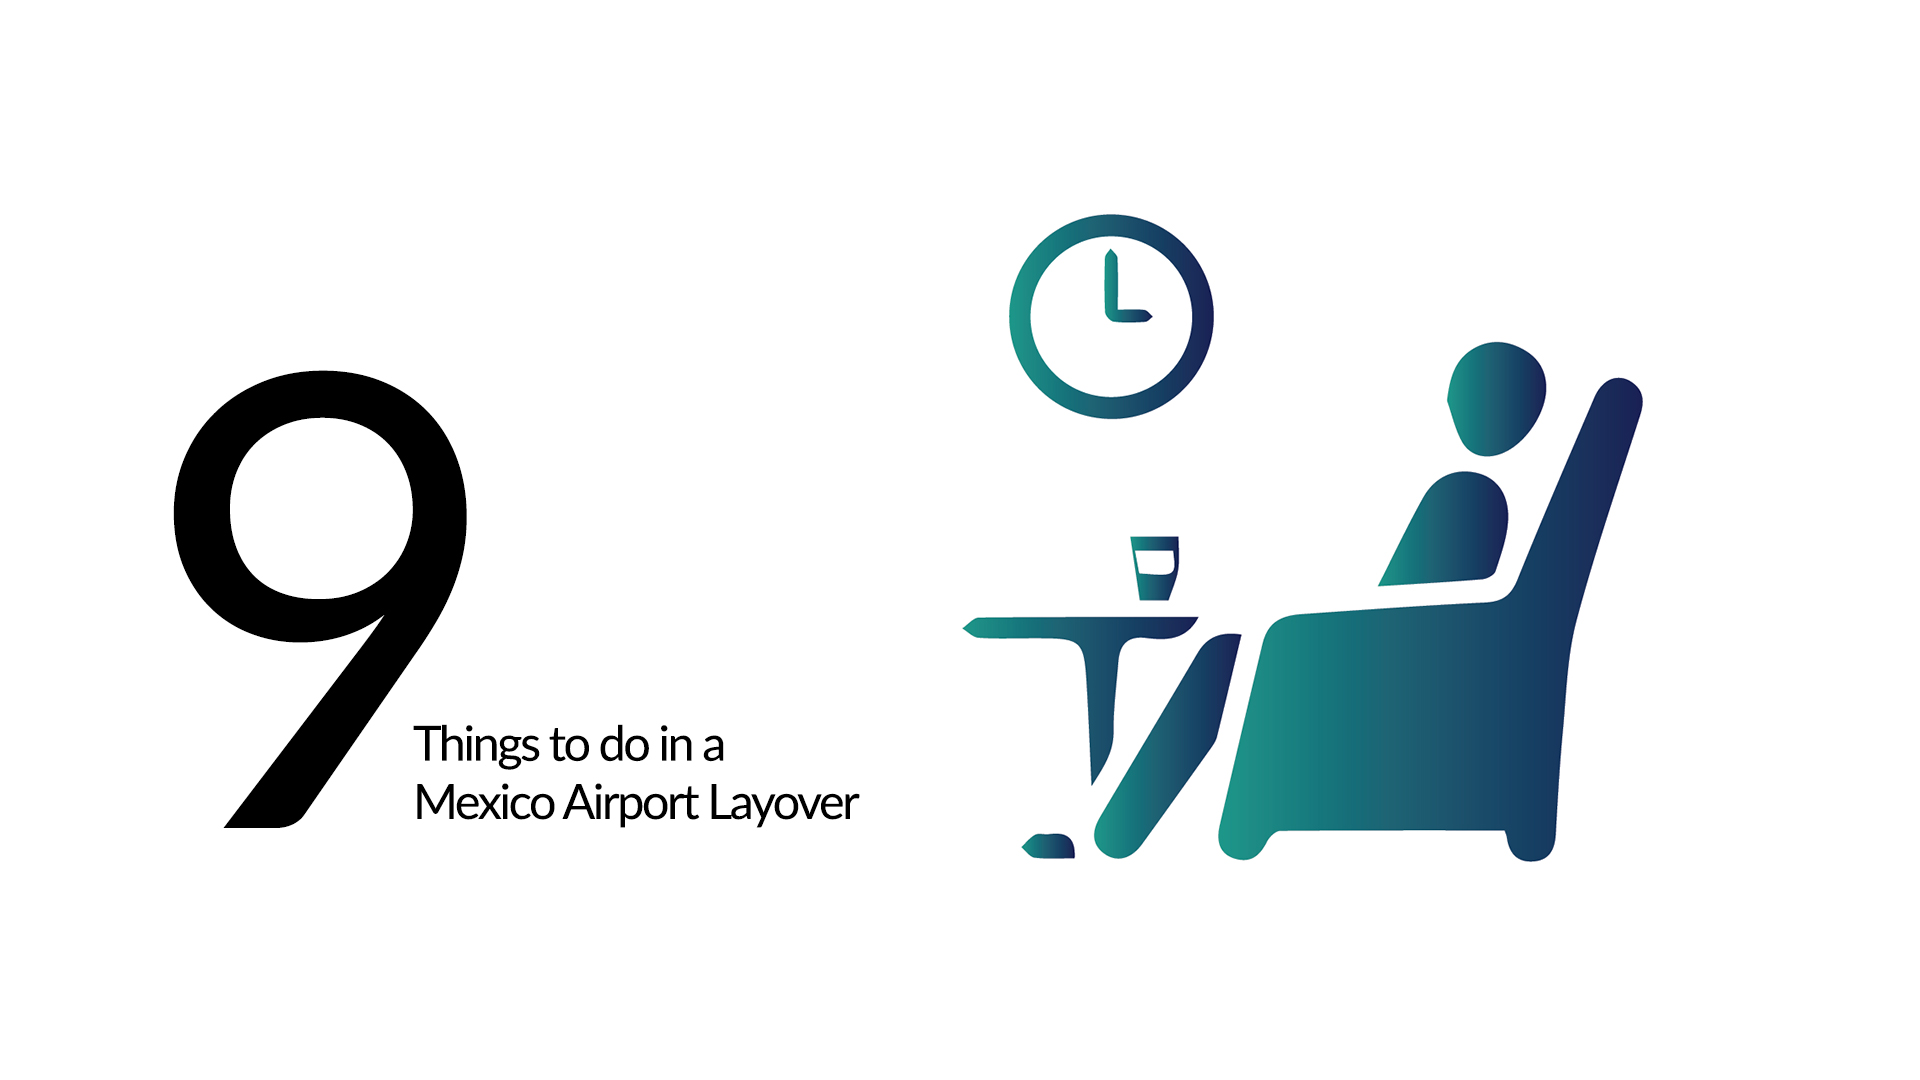 Travel, business, airport, assistance, VIP, FastTrack, MeetAndGreet, Mexico, Layover